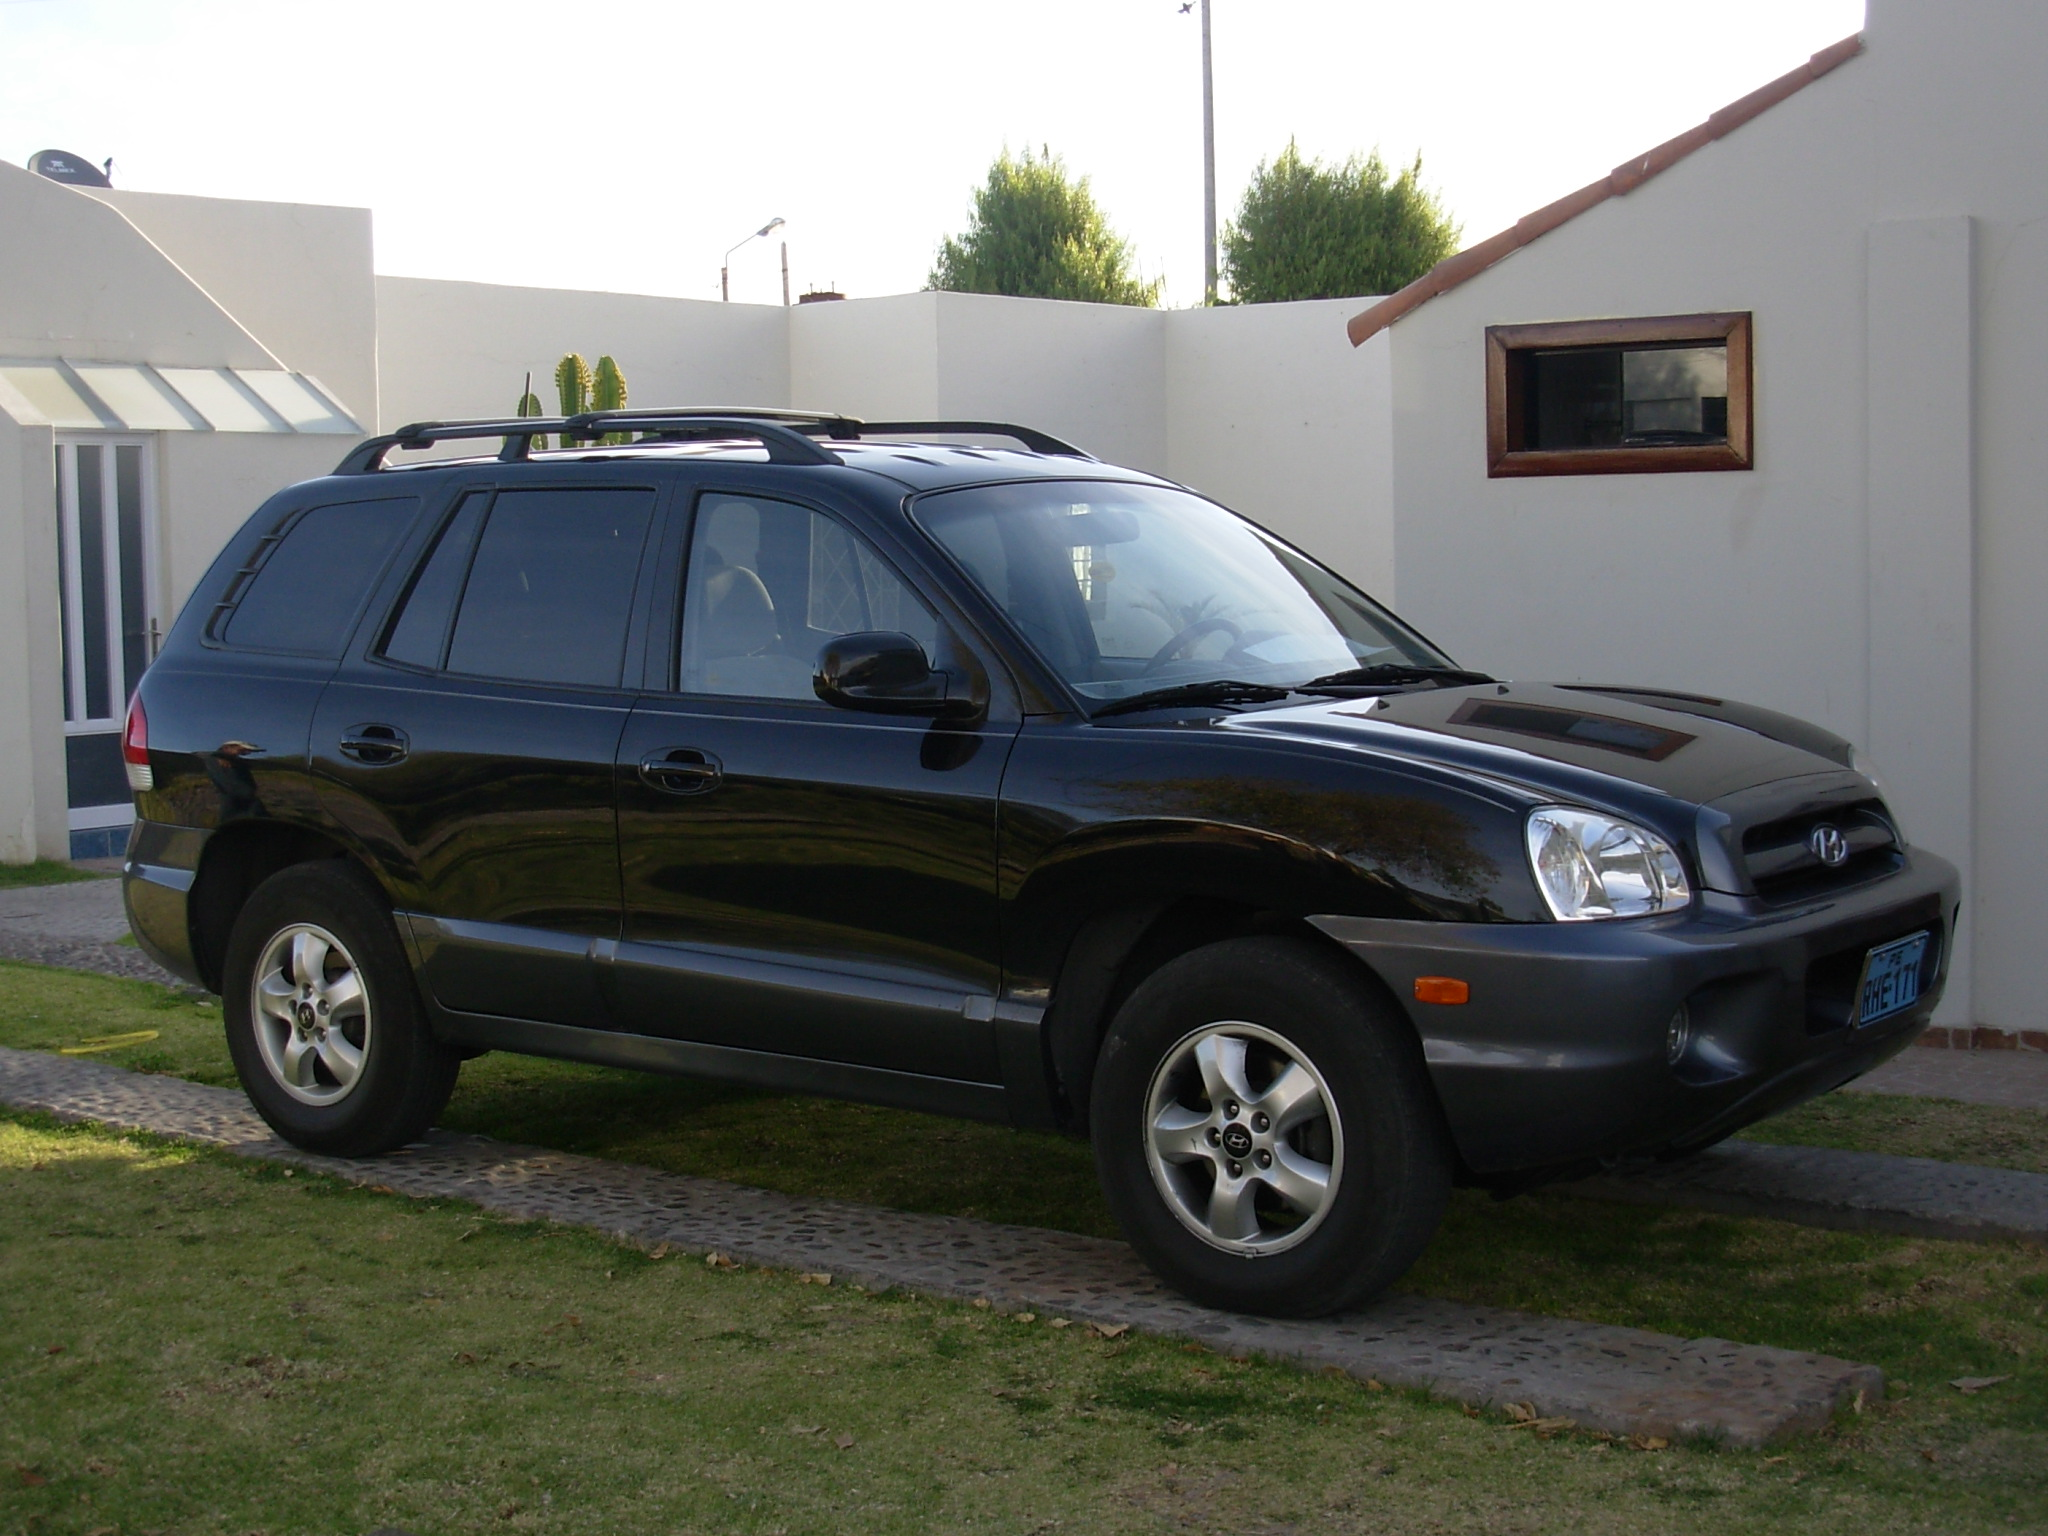 2005 hyundai santa fe photos informations articles. Black Bedroom Furniture Sets. Home Design Ideas